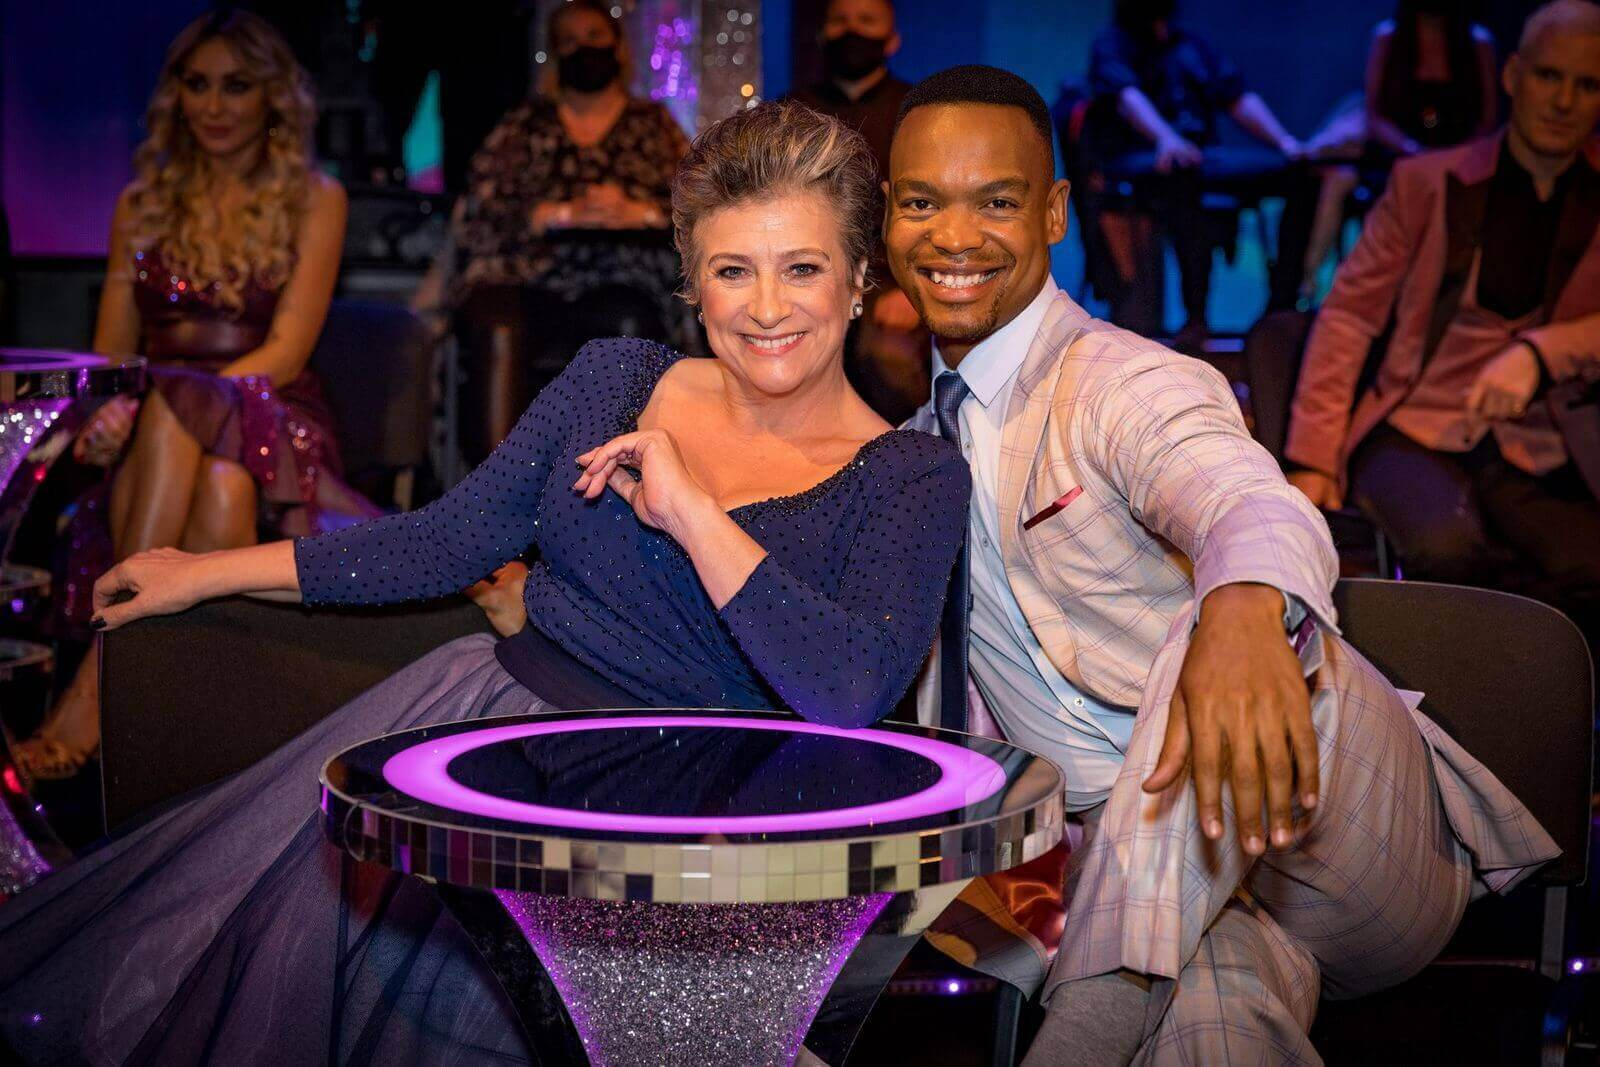 Strictly Come Dancing UK S18 Johannes Radebe and Caroline Quentin